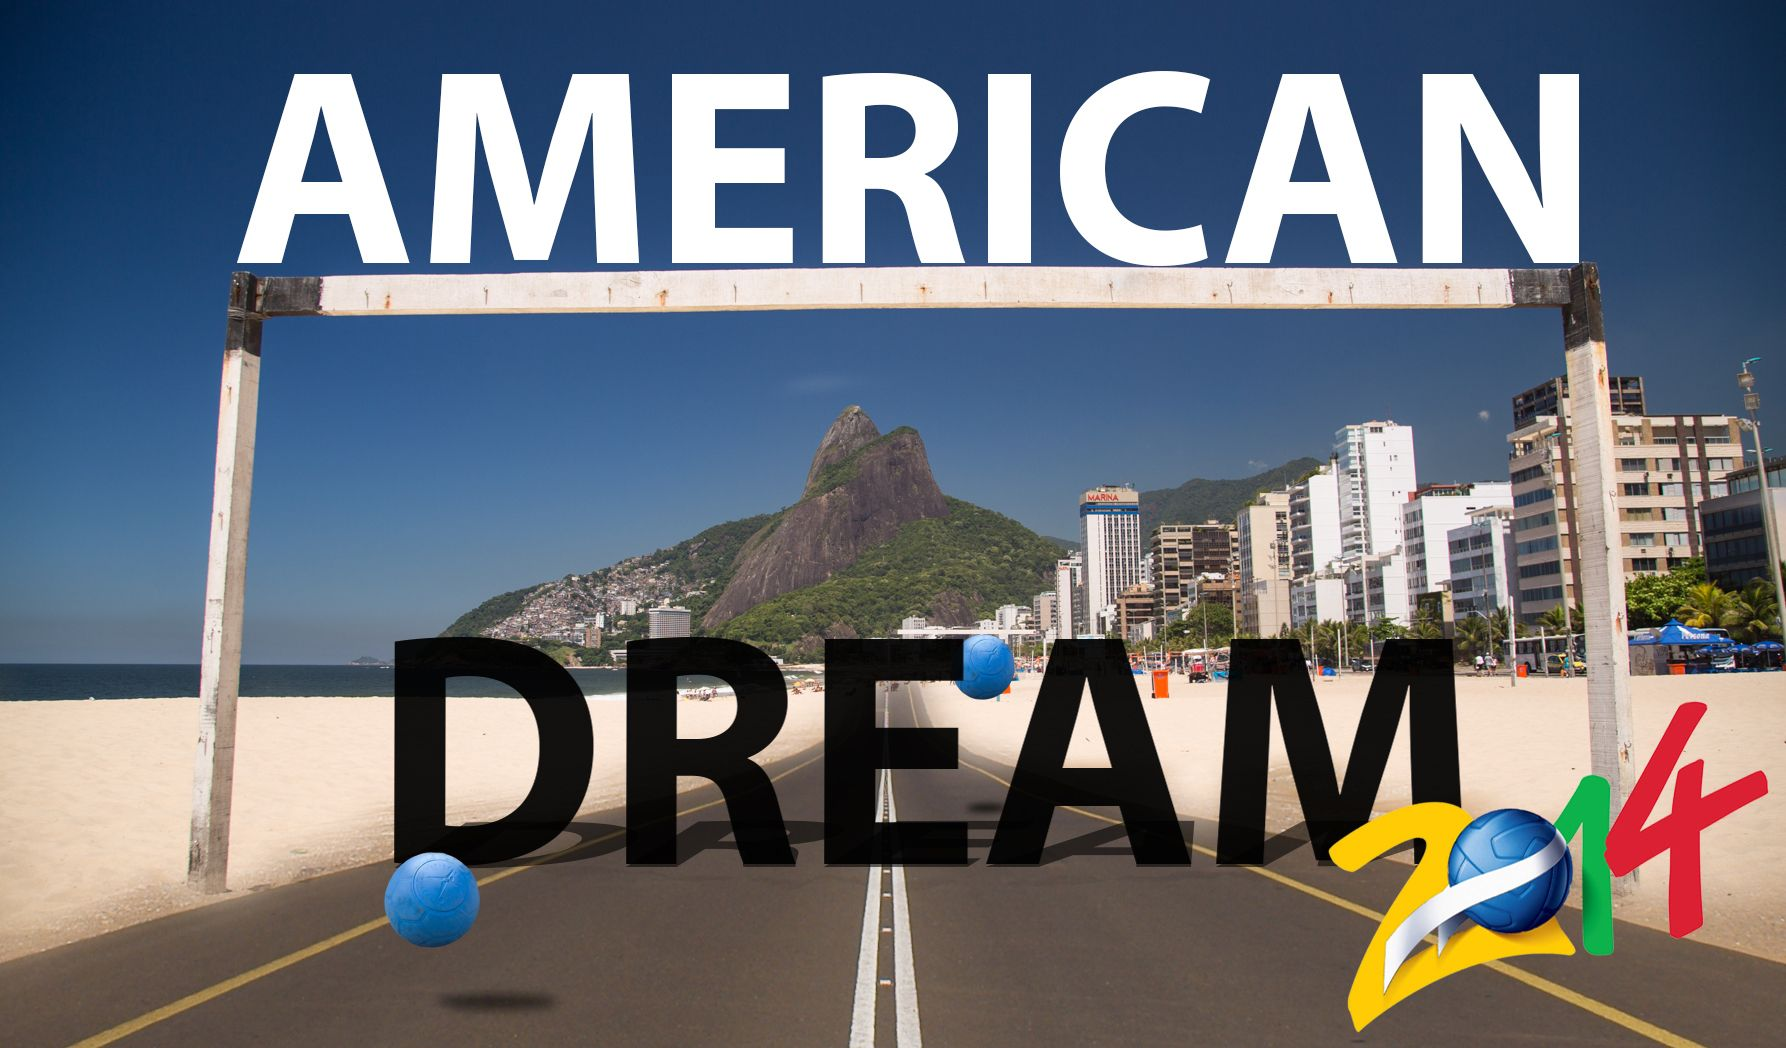 1r1__americandream_road_ball_2014.jpg